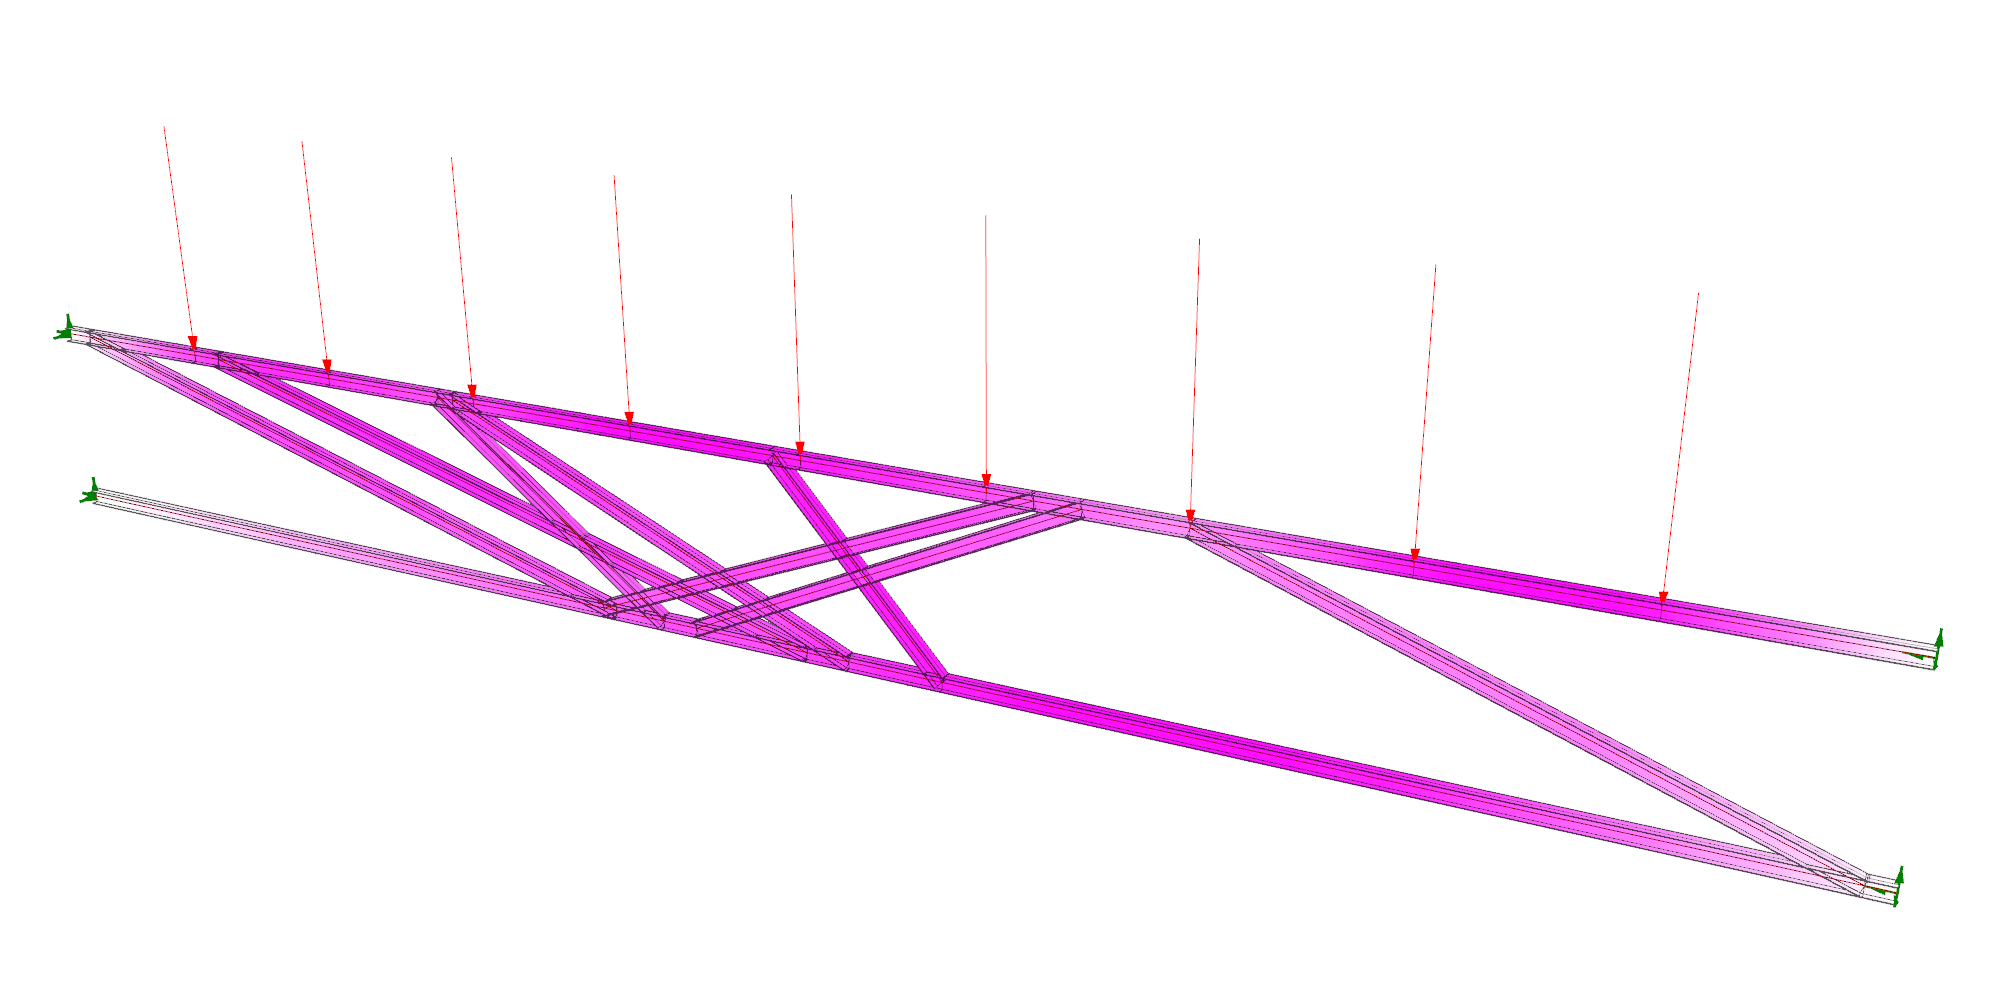 Optimization of Truss Diagonals